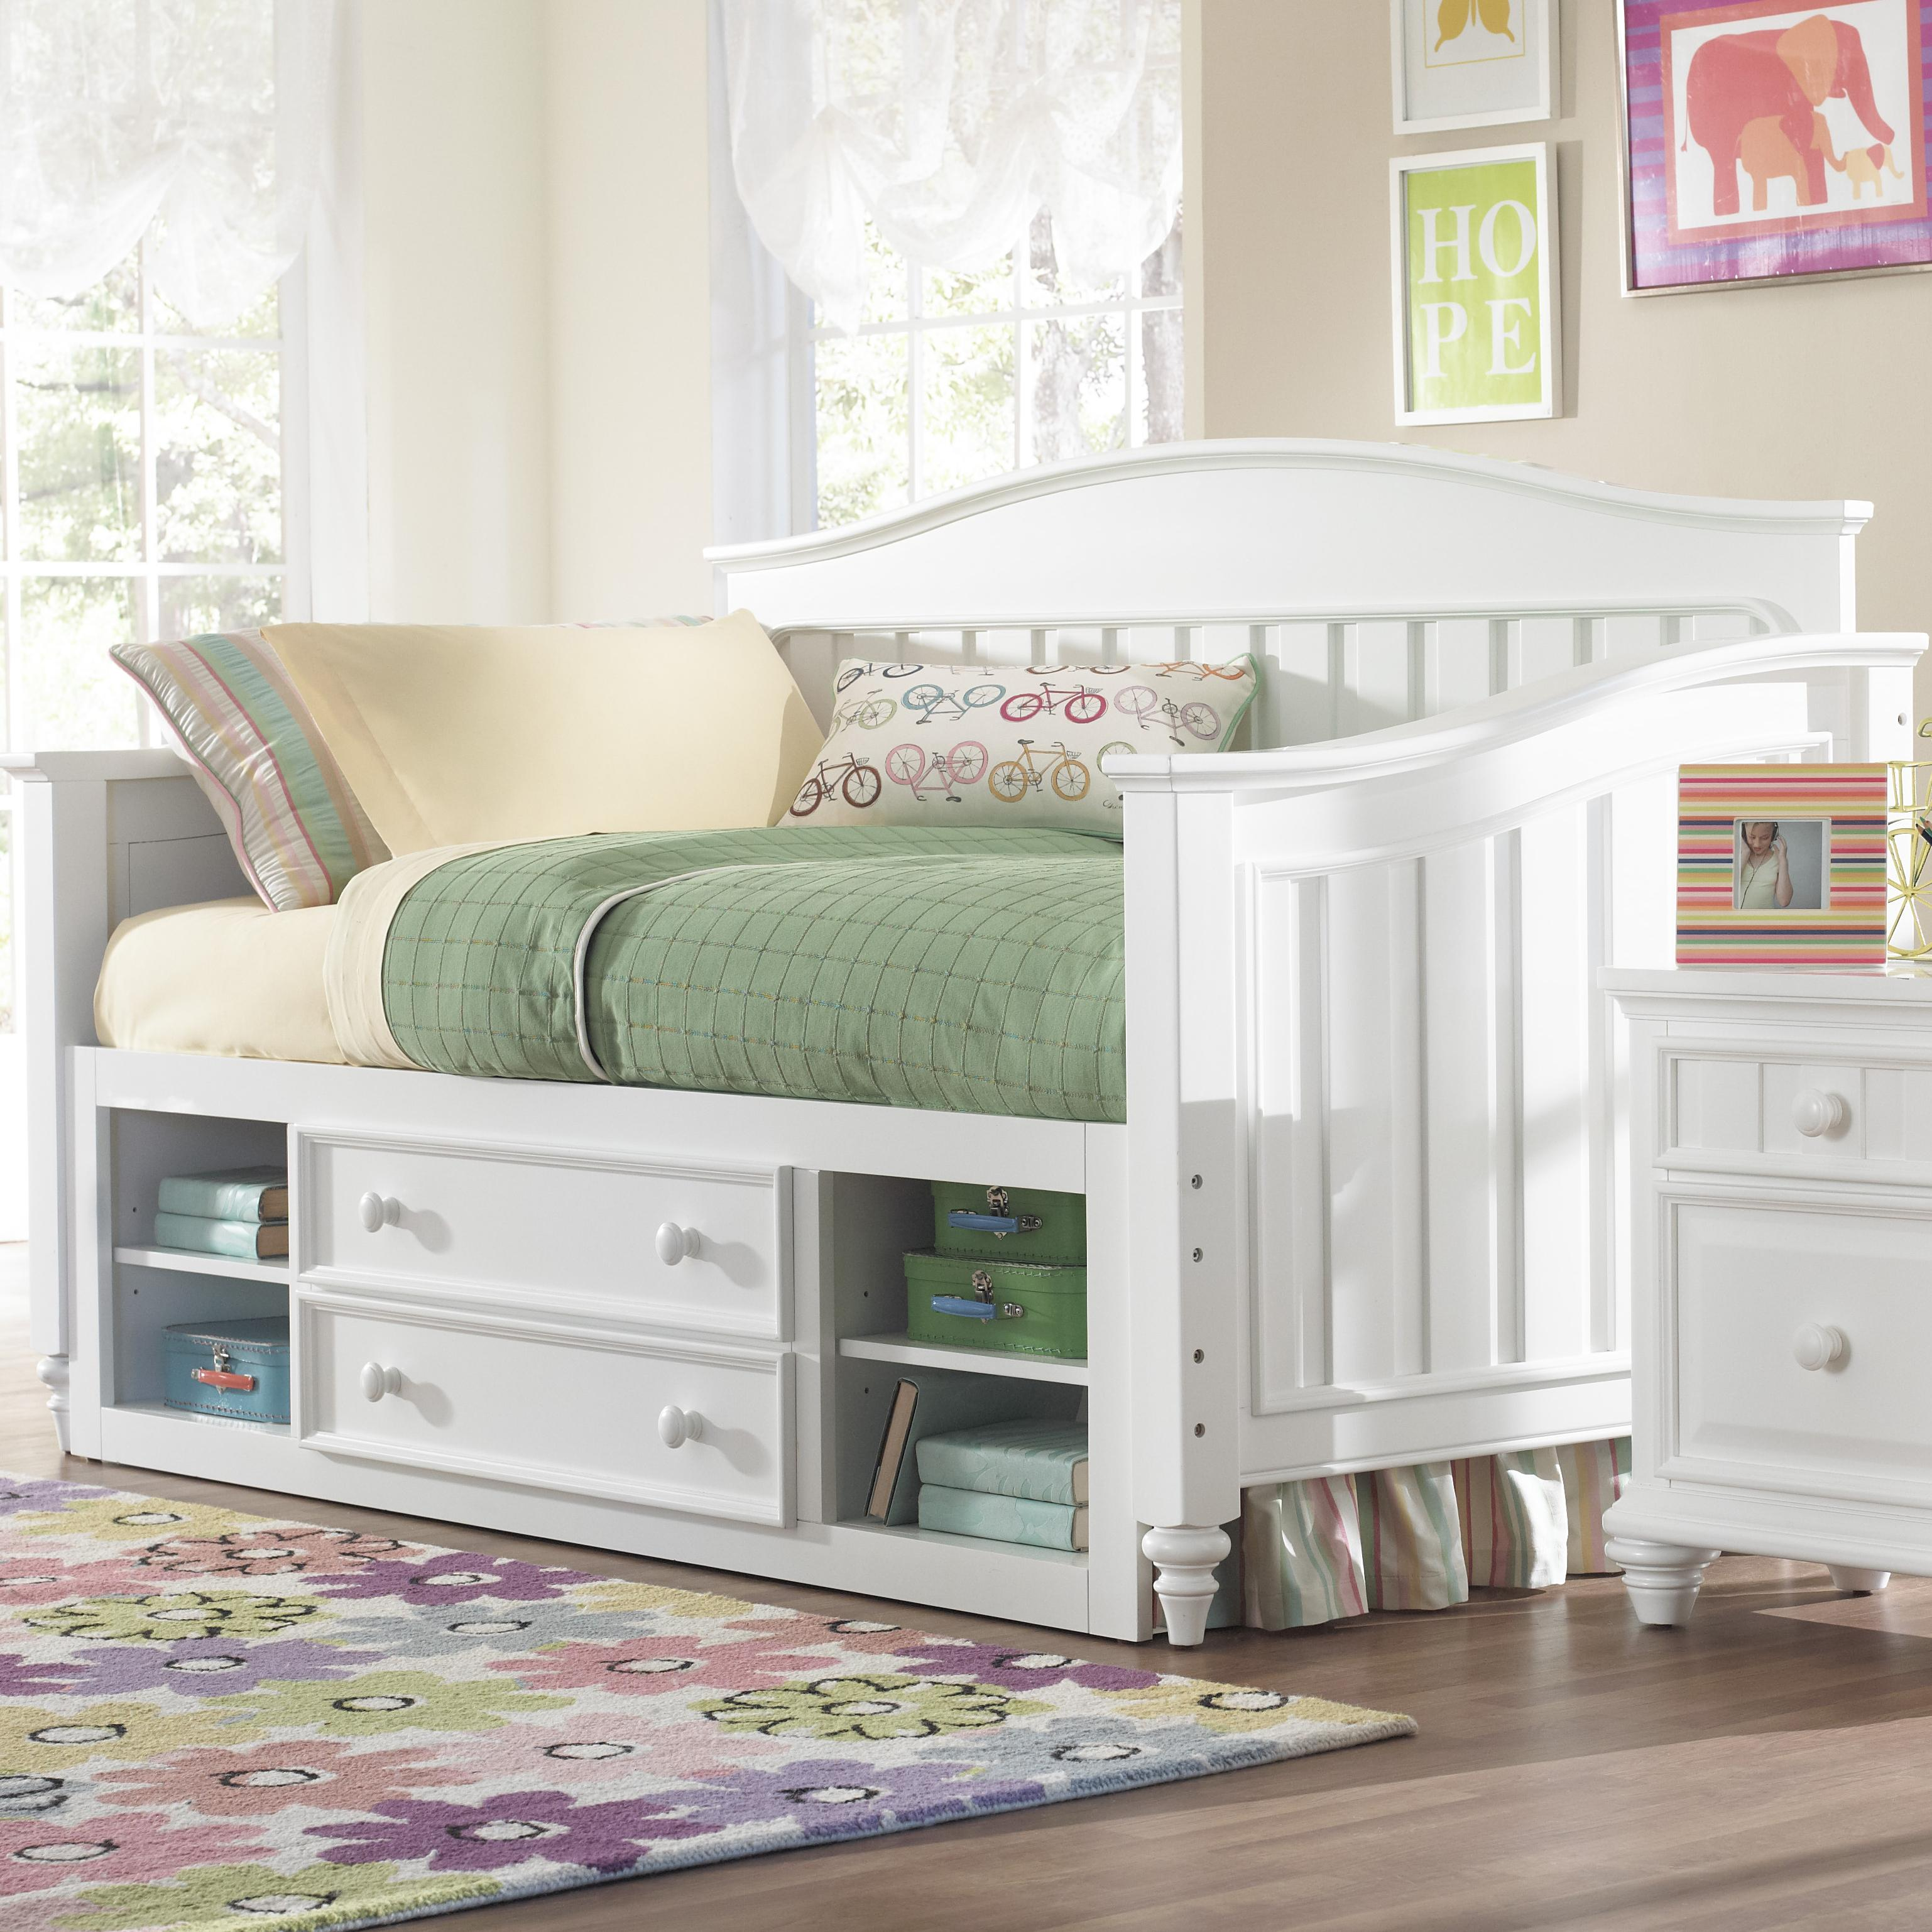 Kidz Gear Campbell Day Bed with Storage - Item Number: 8466-740+741+643